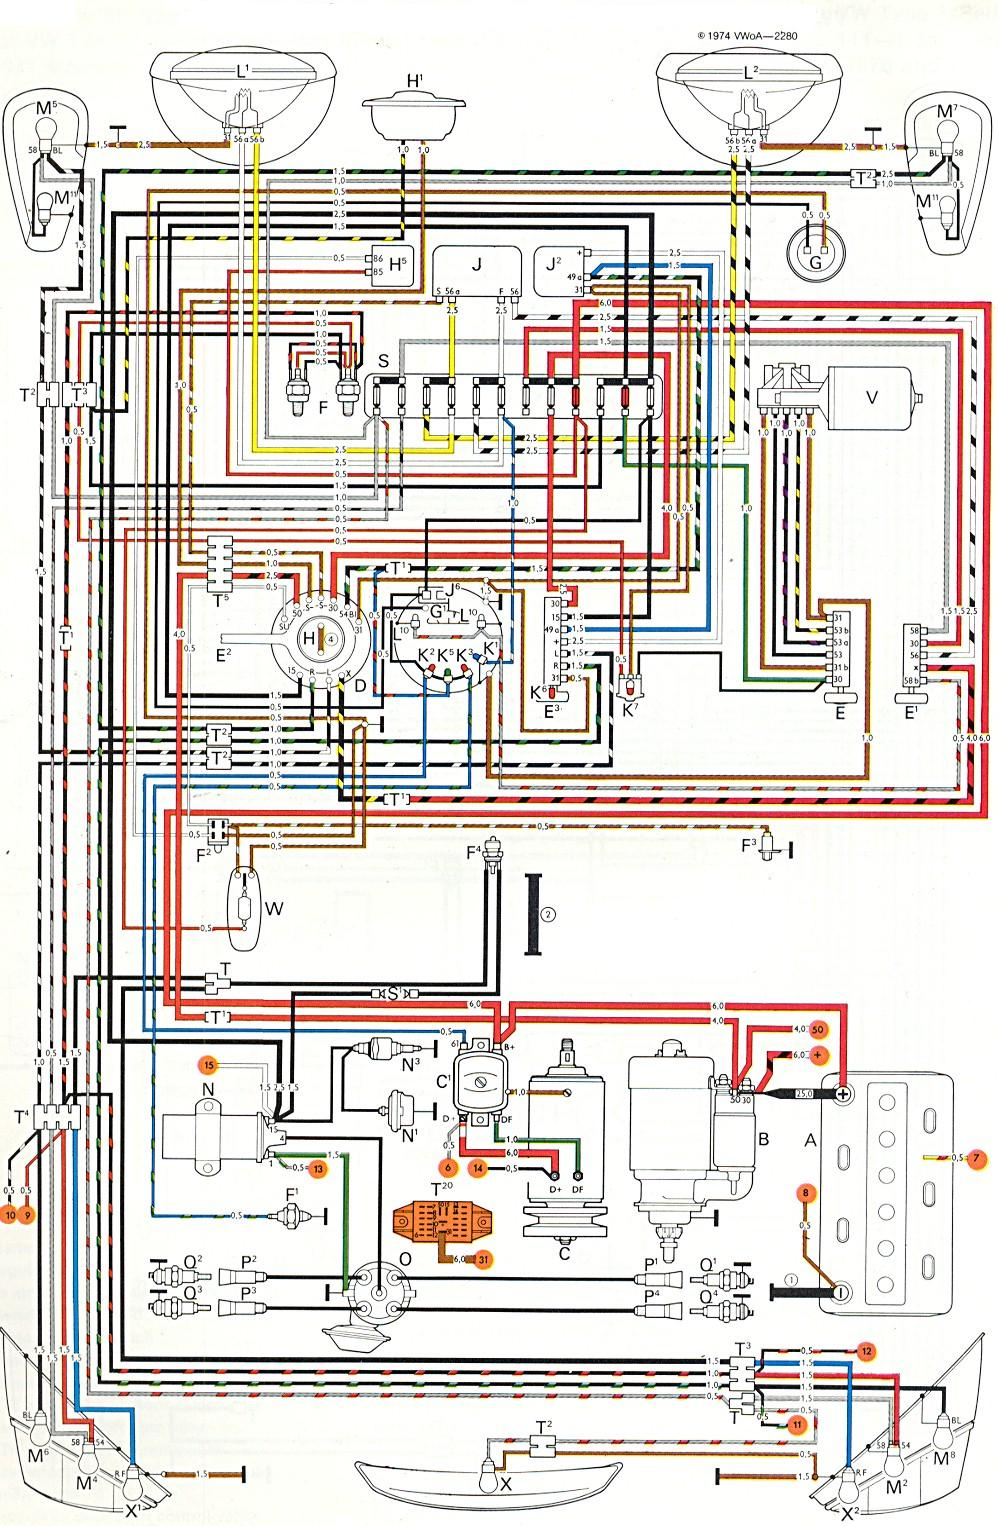 1974 vw generator wiring automotive wiring diagrams basic alternator wiring diagram 1974 vw alternator wiring diagram [ 999 x 1526 Pixel ]